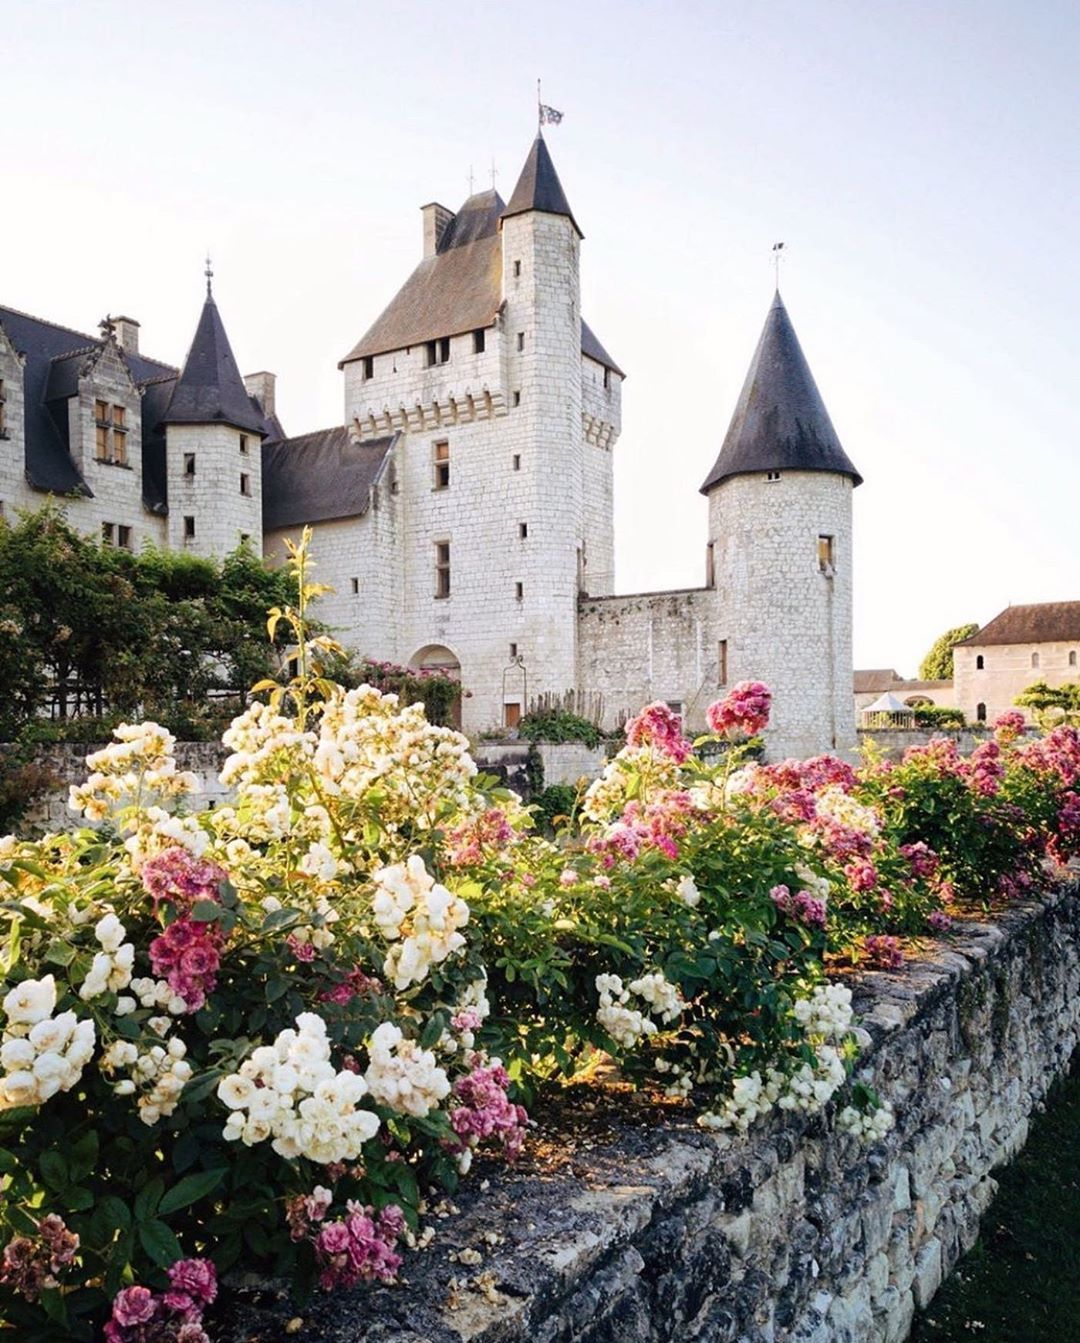 Town Country On Instagram A Fairytale Scene In The Loire Valley Regram A Ontheroad At Chateaudurivau Loirevalley Franc In 2020 Loire Valley Loire Castle